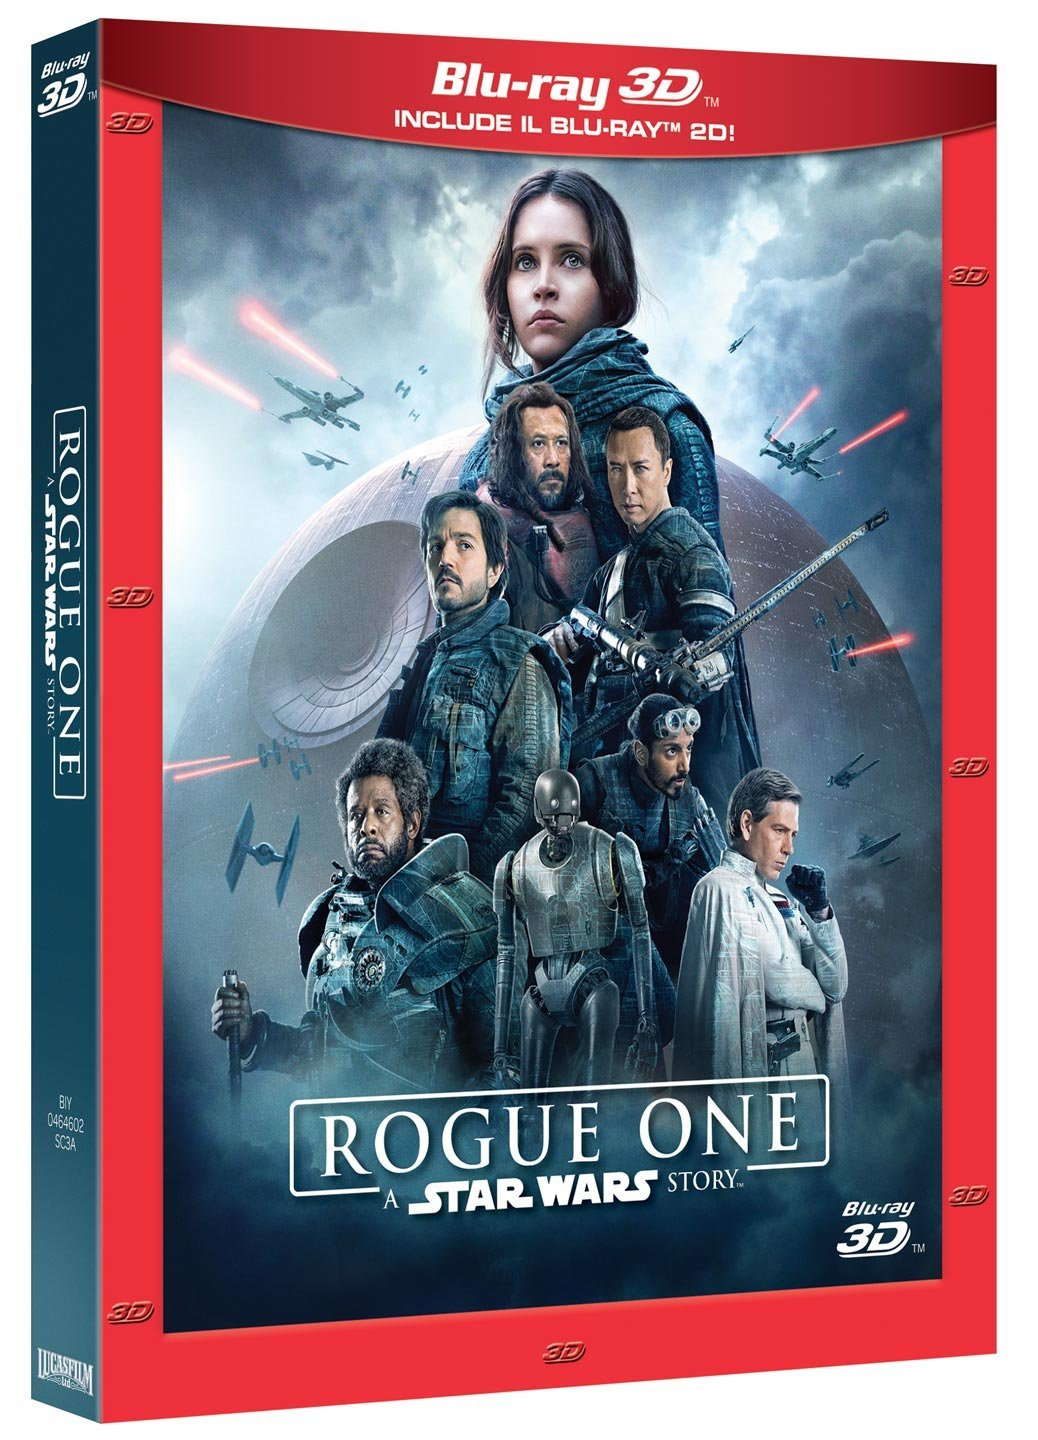 Il blu-ray 3D e 2D di Rogue One: A Star Wars Story